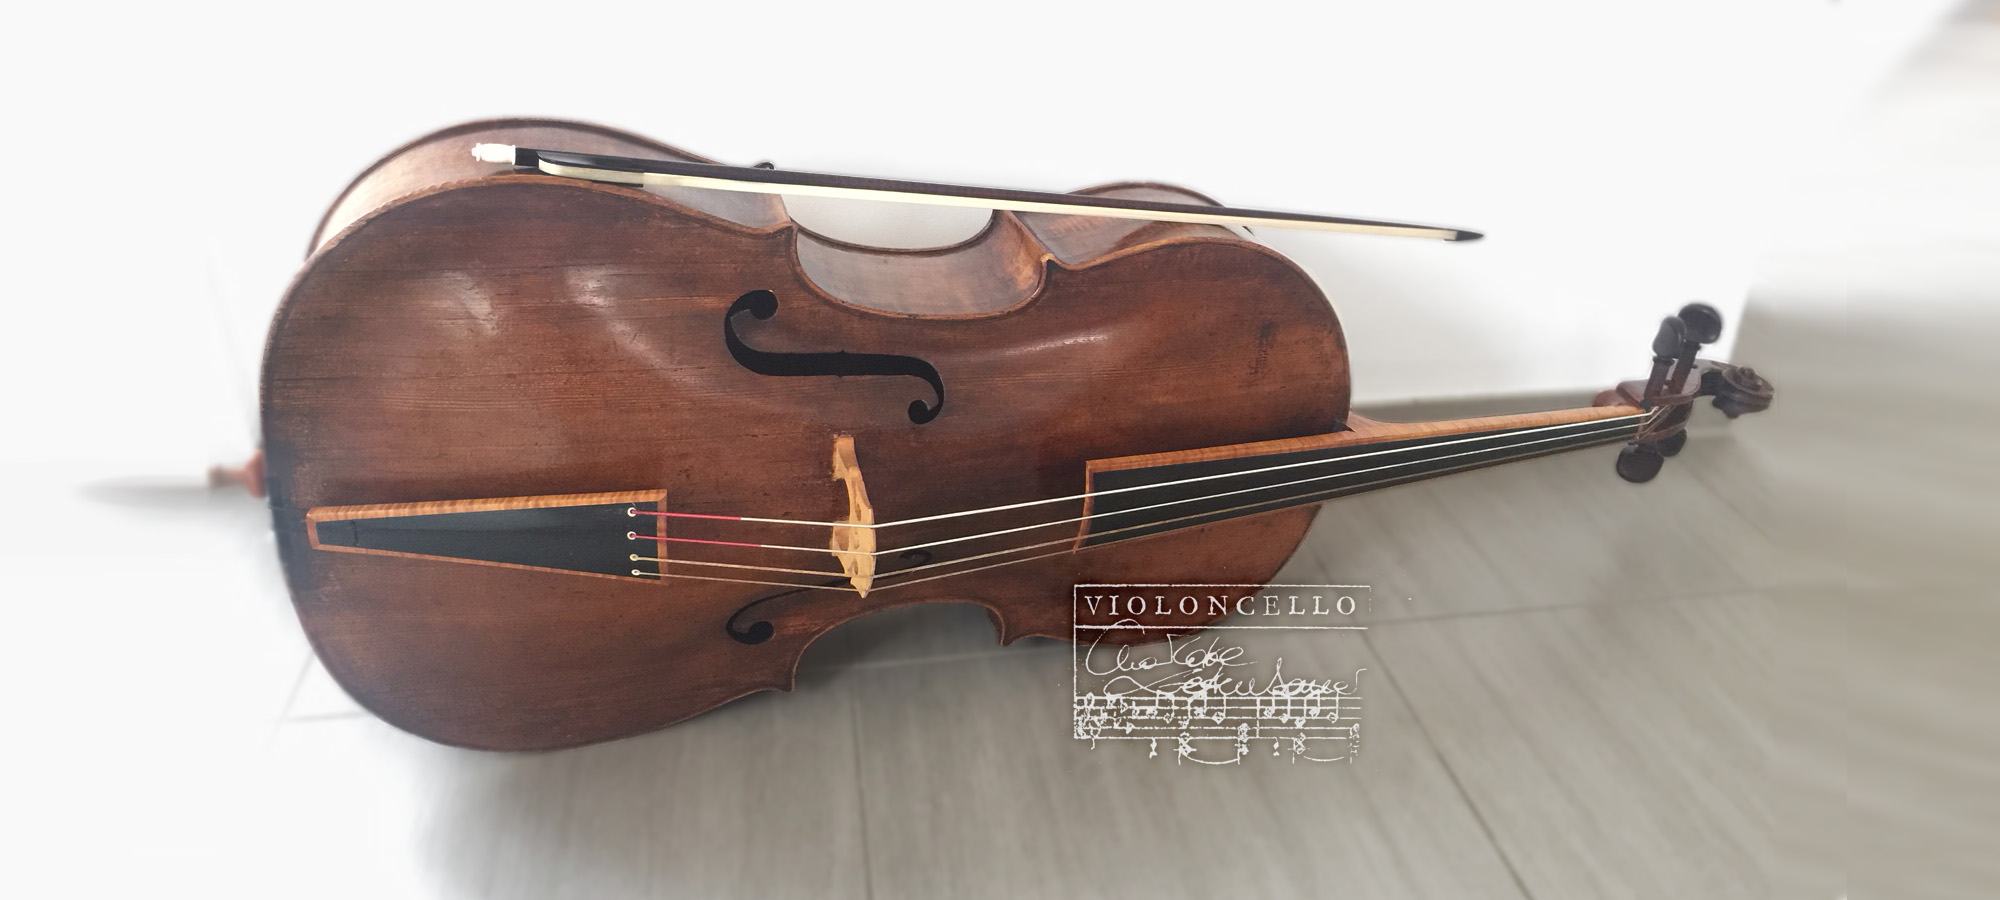 konzerte veranstaltungen charlotte lettenbauer violoncello. Black Bedroom Furniture Sets. Home Design Ideas